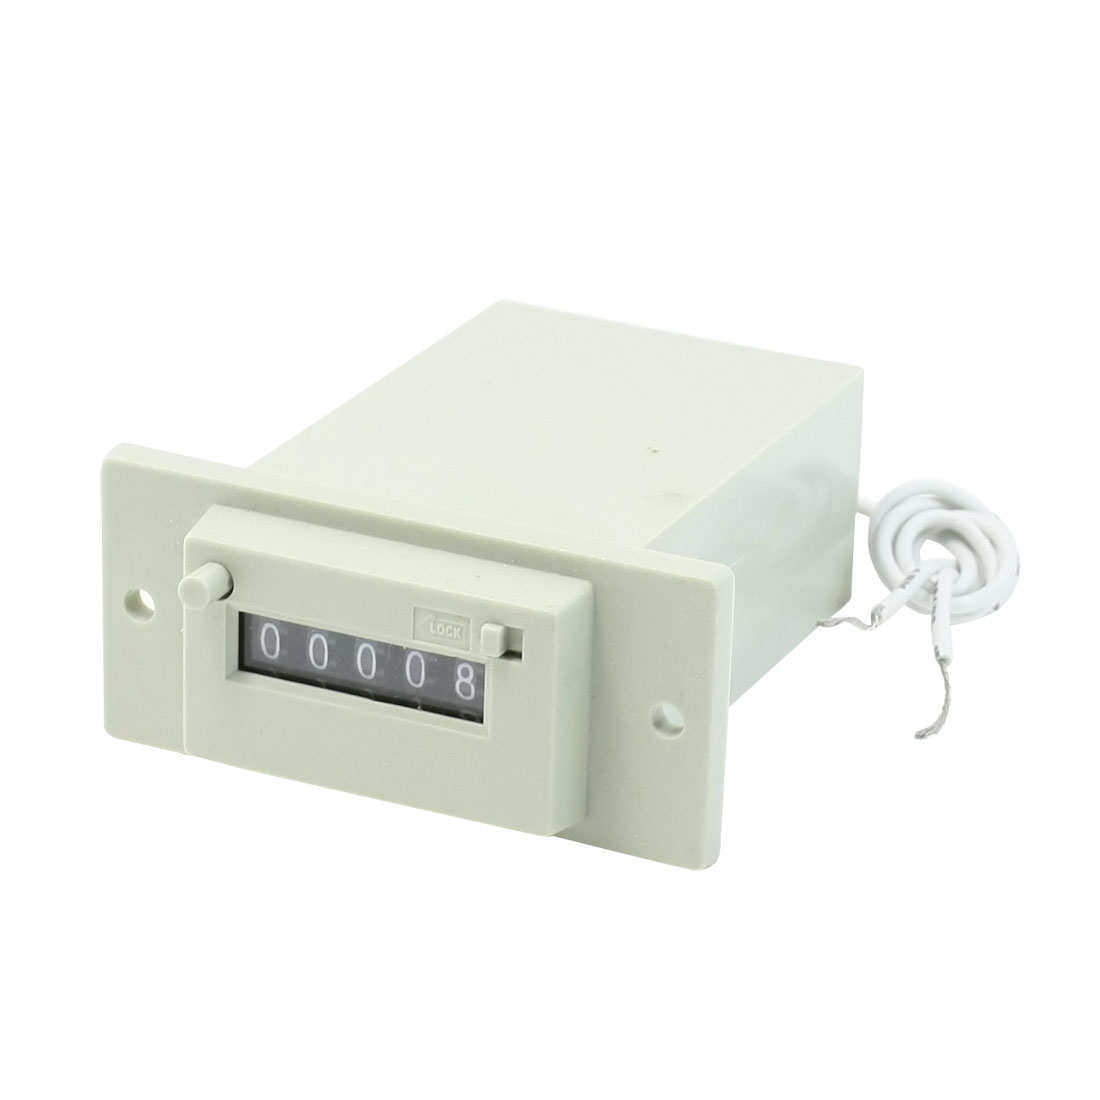 CSK5-CKW DC 24V 5 Digits 2 White Wire Lockable Electronmagnetic Counter